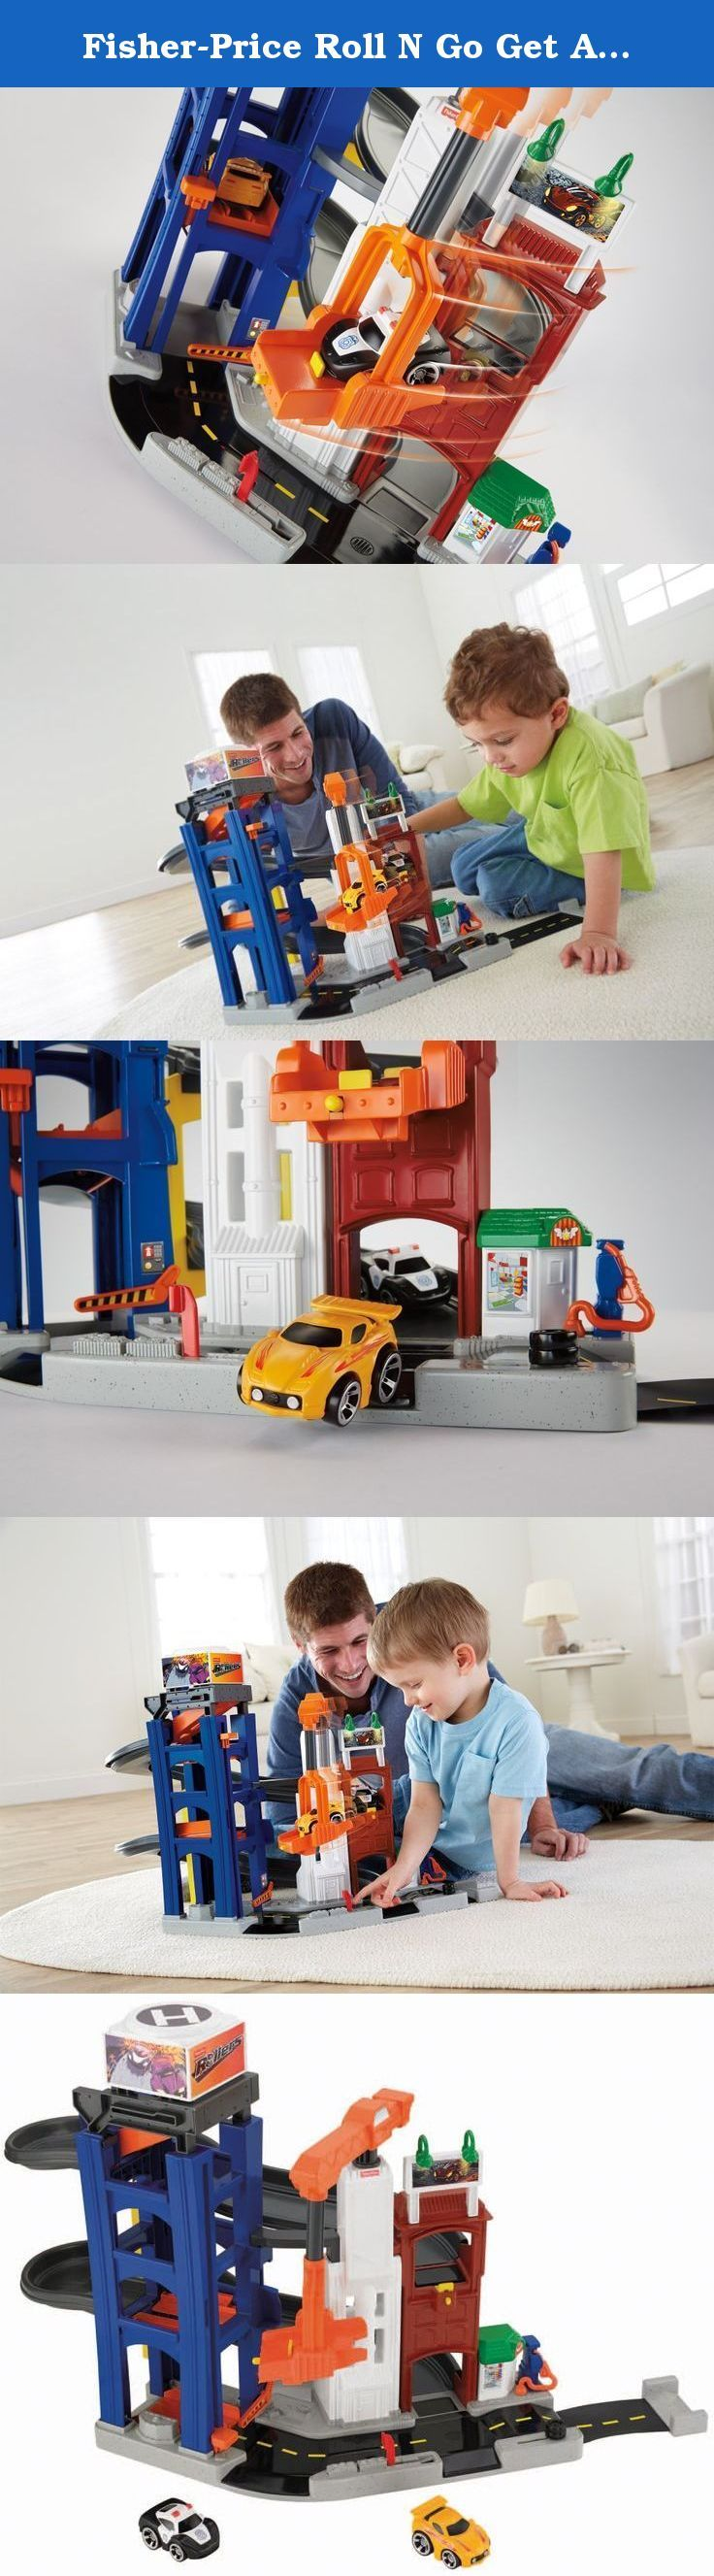 "Fisher-Price Roll N Go Get Away Garage. The Get Away Garage is a tower ""garage"" and ramp that comes with two freewheeling vehicles for awesome ramp play and tons of imaginative play scenarios! Play out a police chase by placing the Police Car in the ""hideaway"" spot at the top of the garage tower. When the Sports Car enters the tower from the elevator it automatically releases the hidden ramp sending the Police Car in hot pursuit! When reaching the end of the ramp an automatic crane car..."